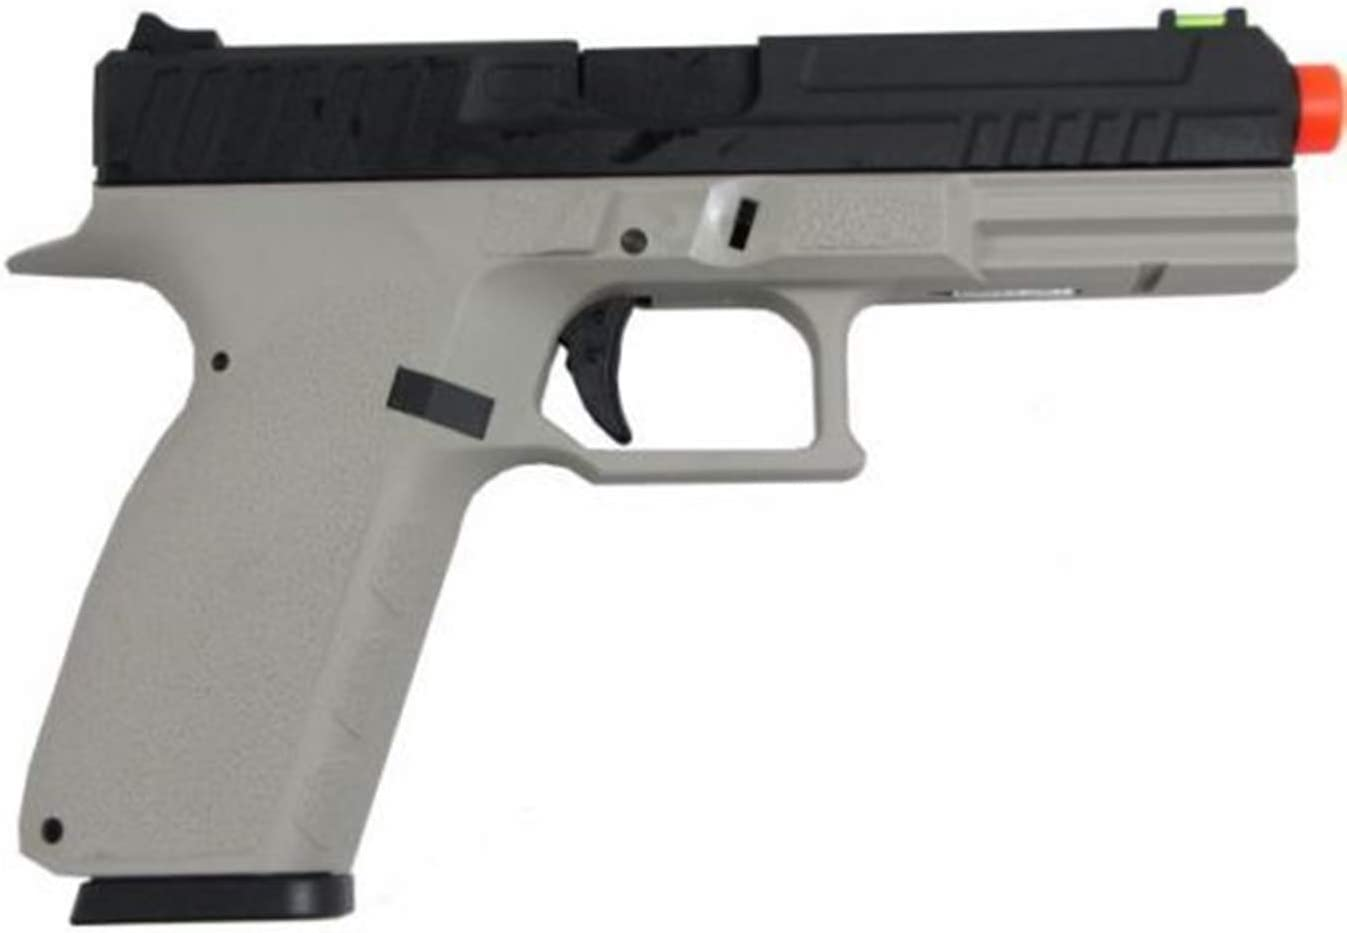 AirSoft Weekly update Hi-capa Tactical Gas Discount is also underway co2 Pistol Blowback Grey Urban